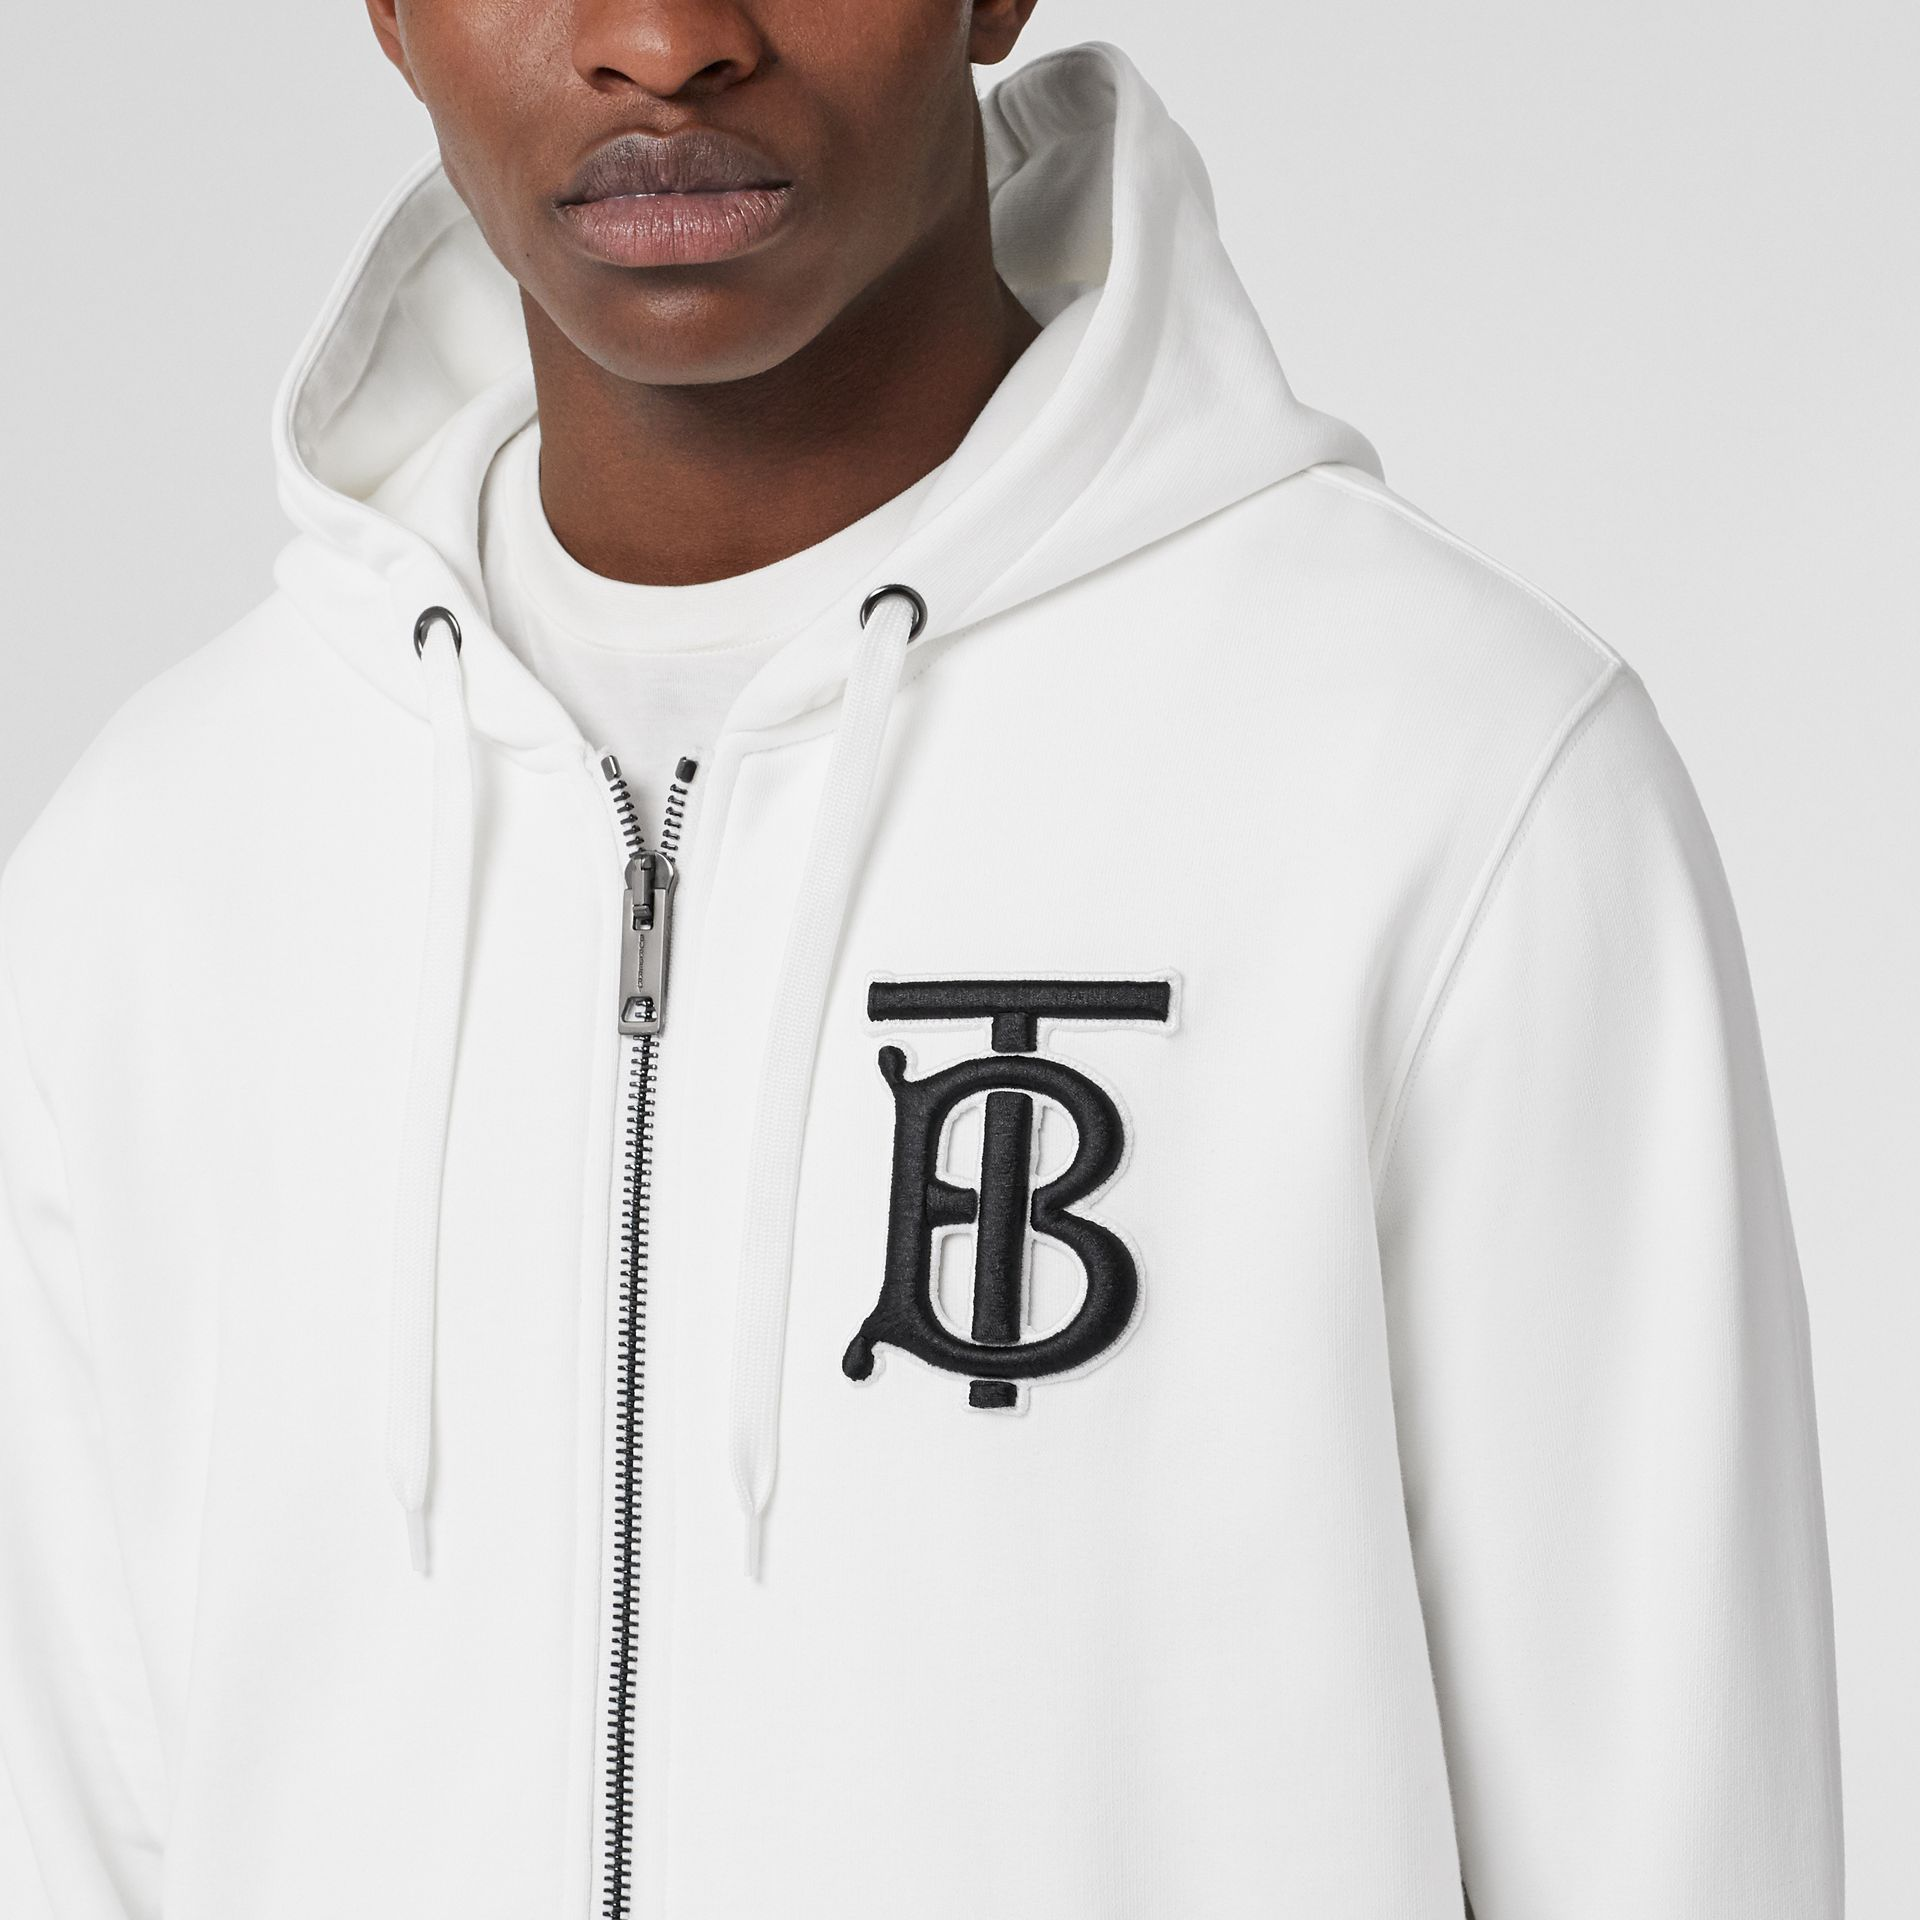 Monogram Motif Cotton Hooded Top in White - Men | Burberry - gallery image 1